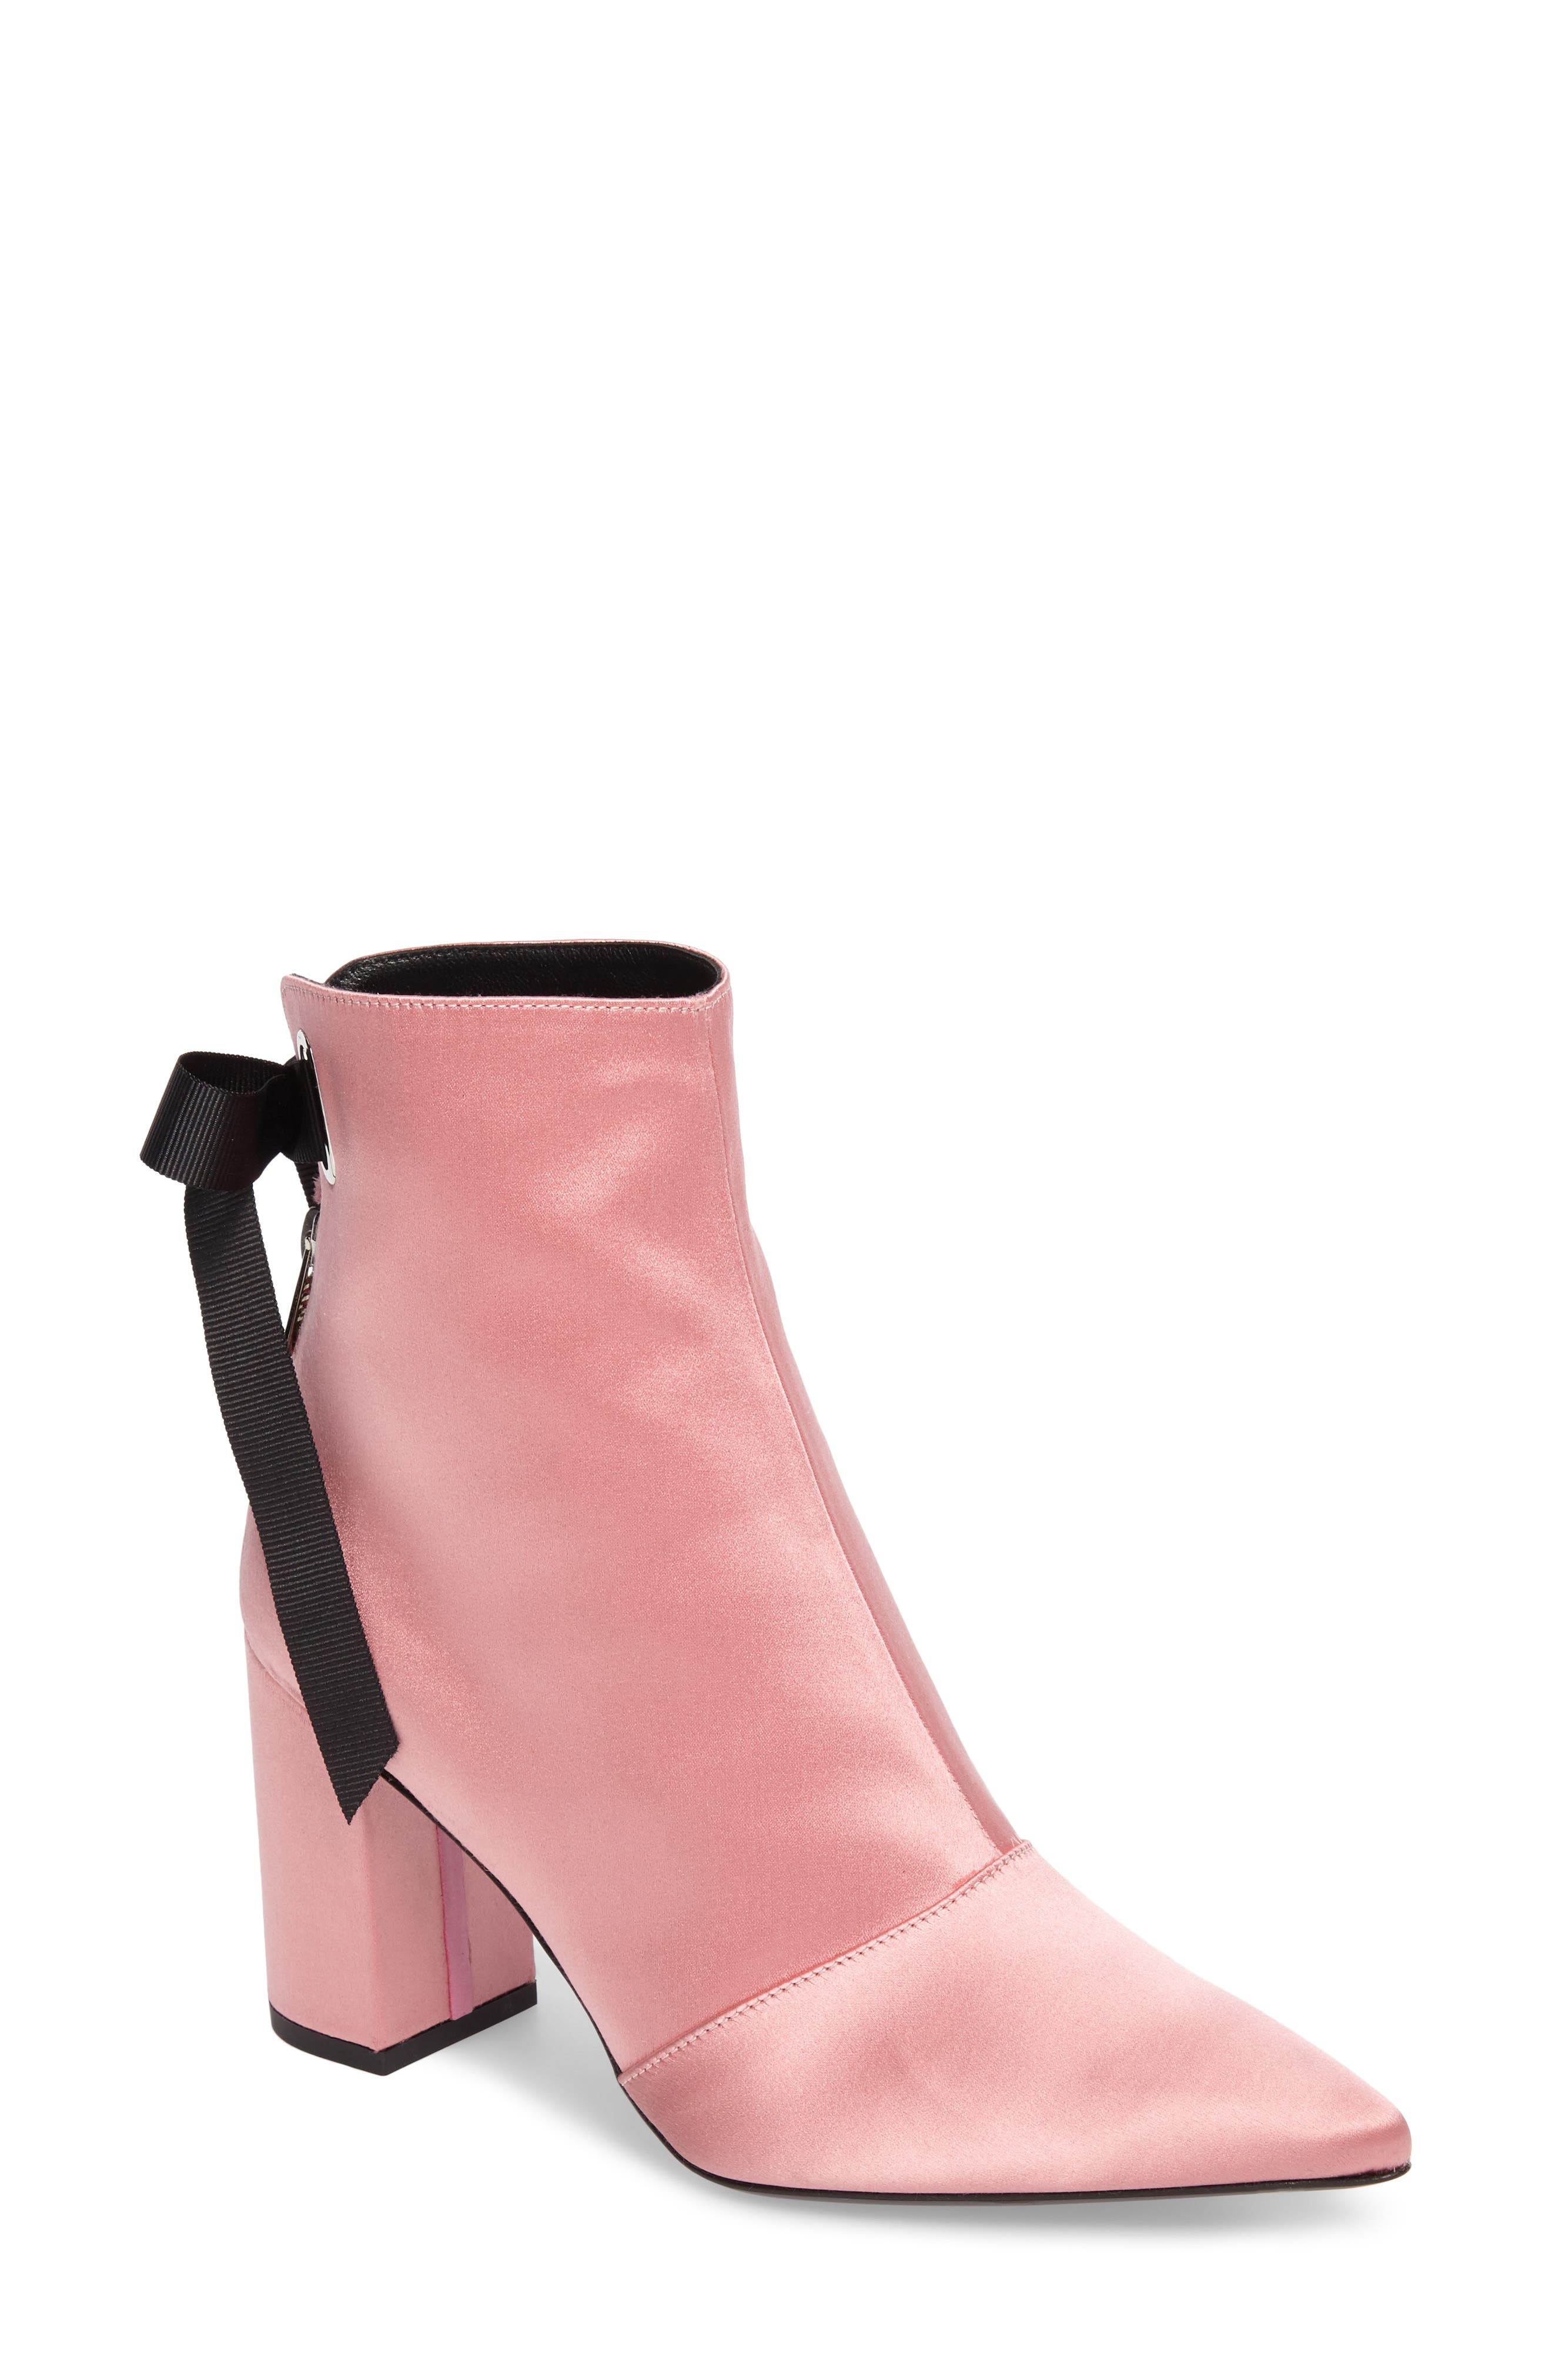 x Self-Portrait Karlis Pointy Toe Bootie,                         Main,                         color, Pink